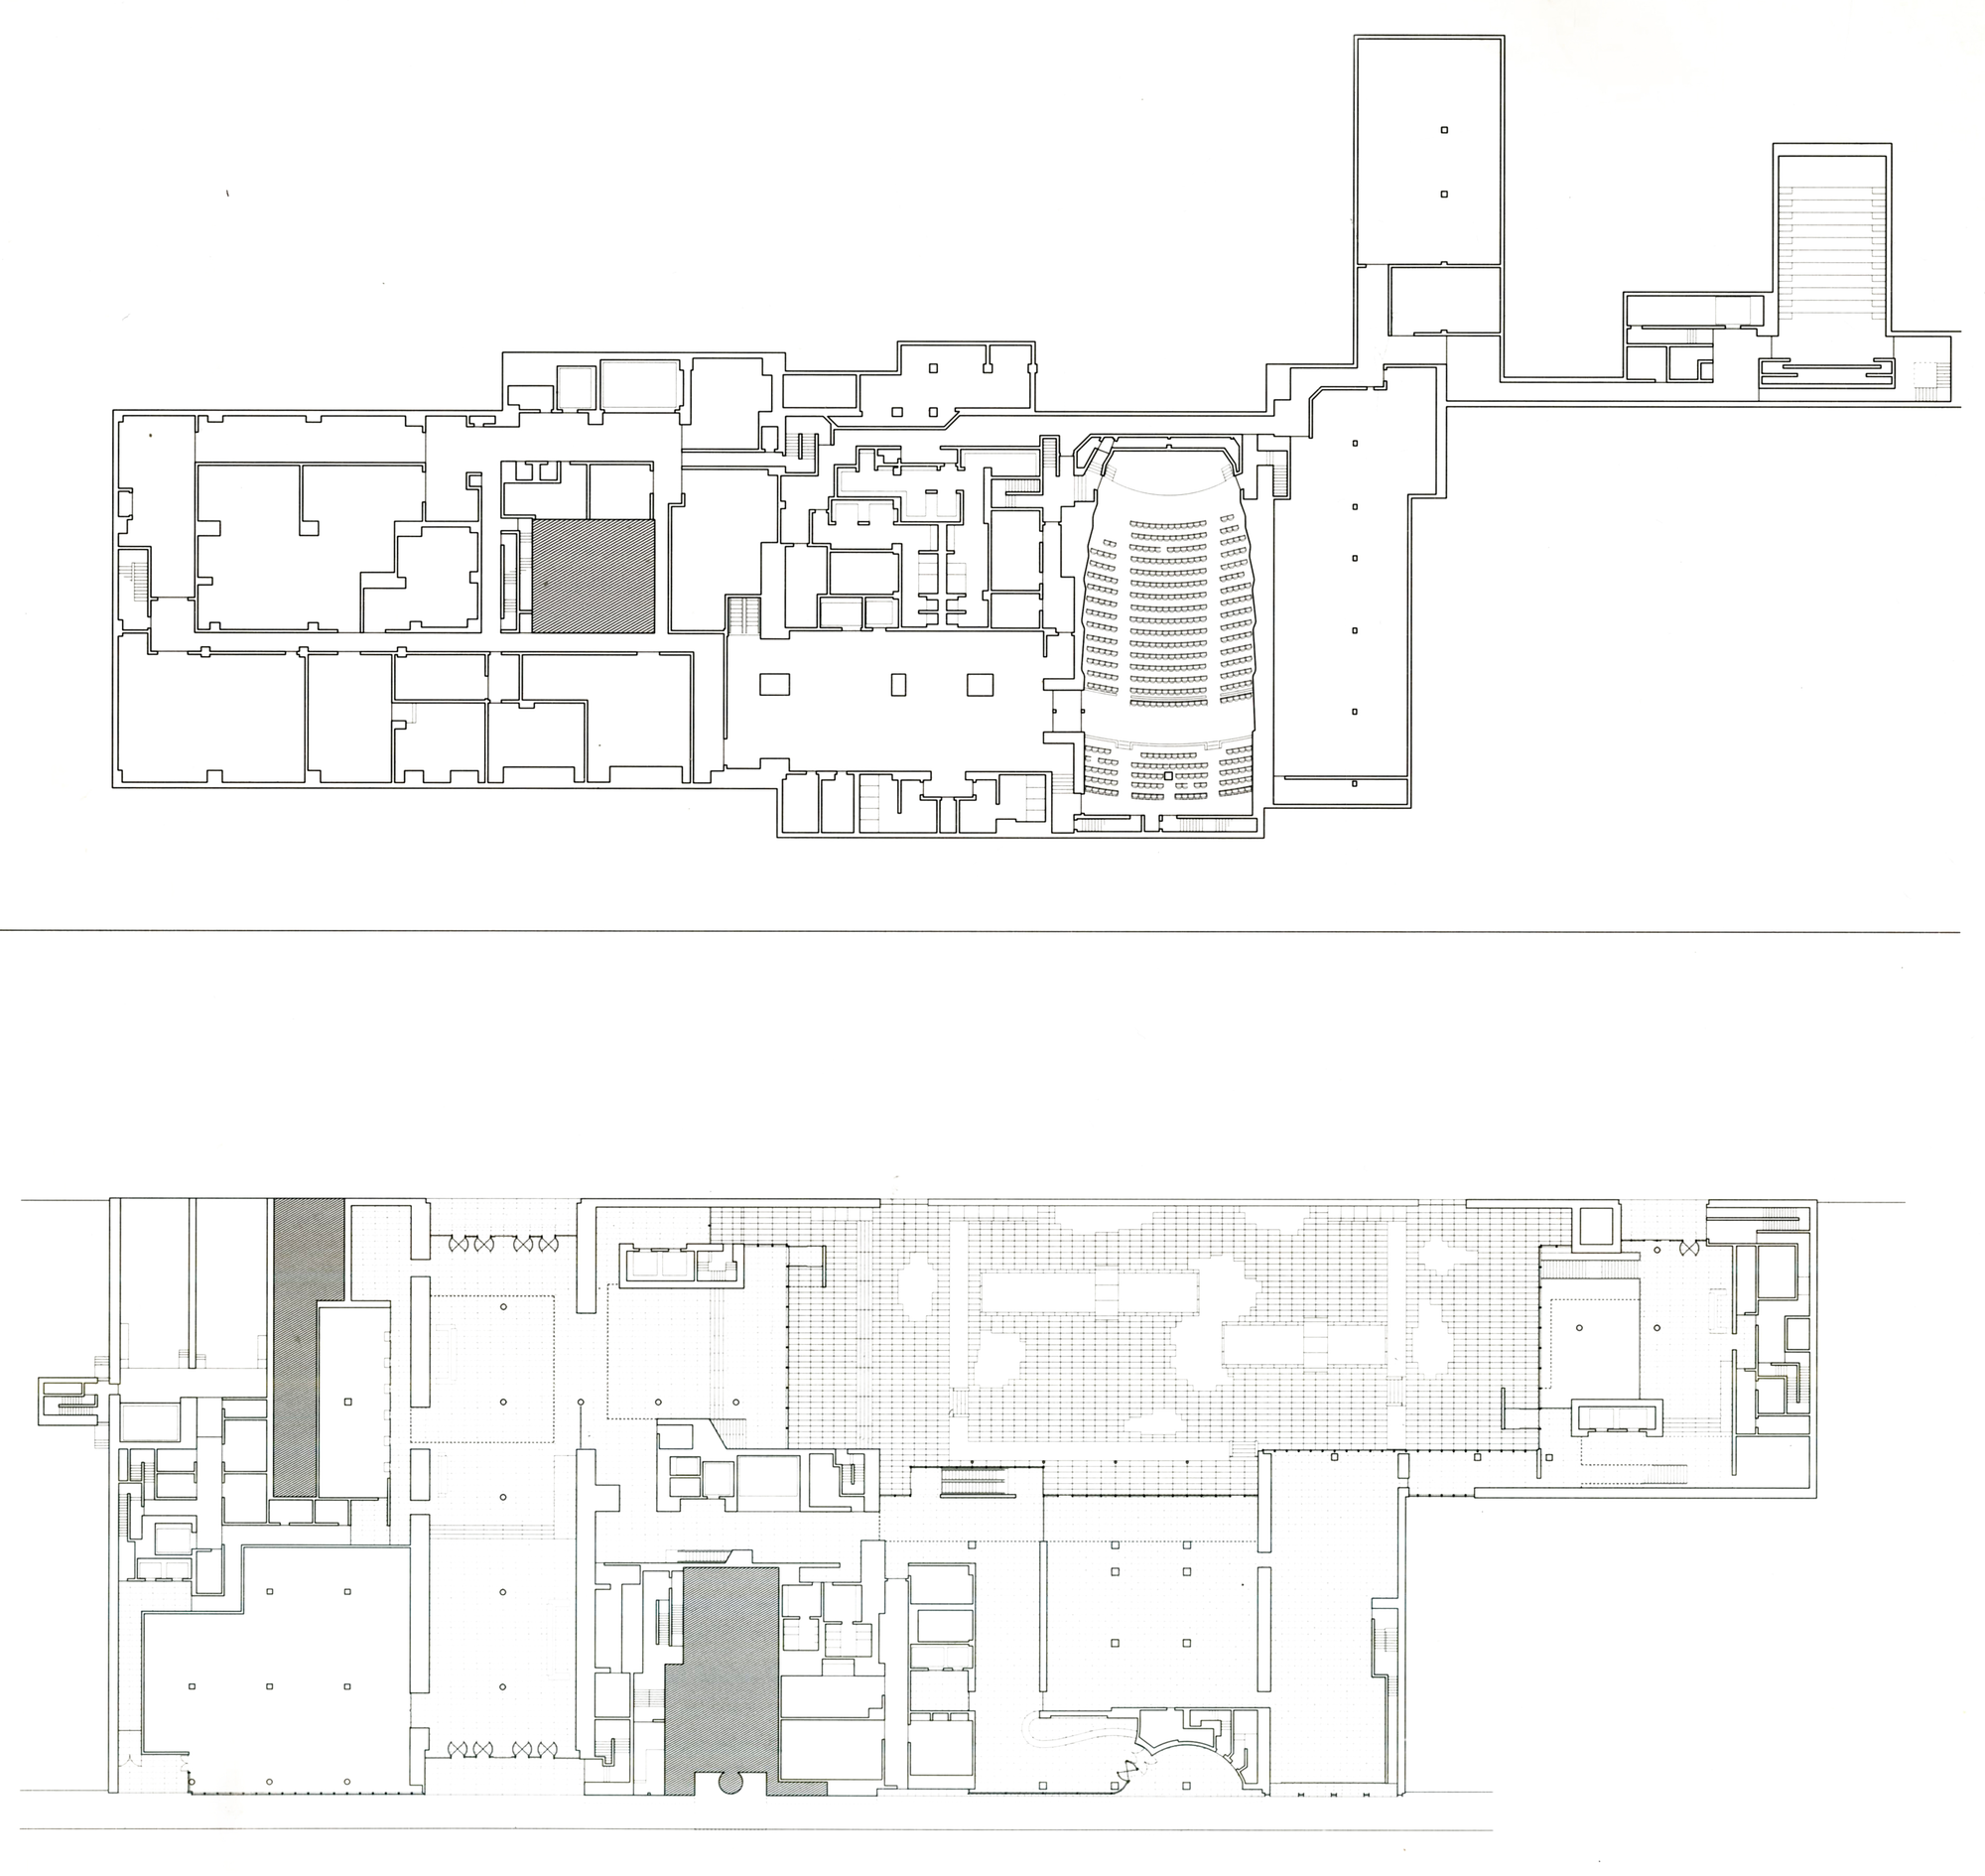 Moma Subcellar And Entry Level Plans 建築図面 平面図 図面